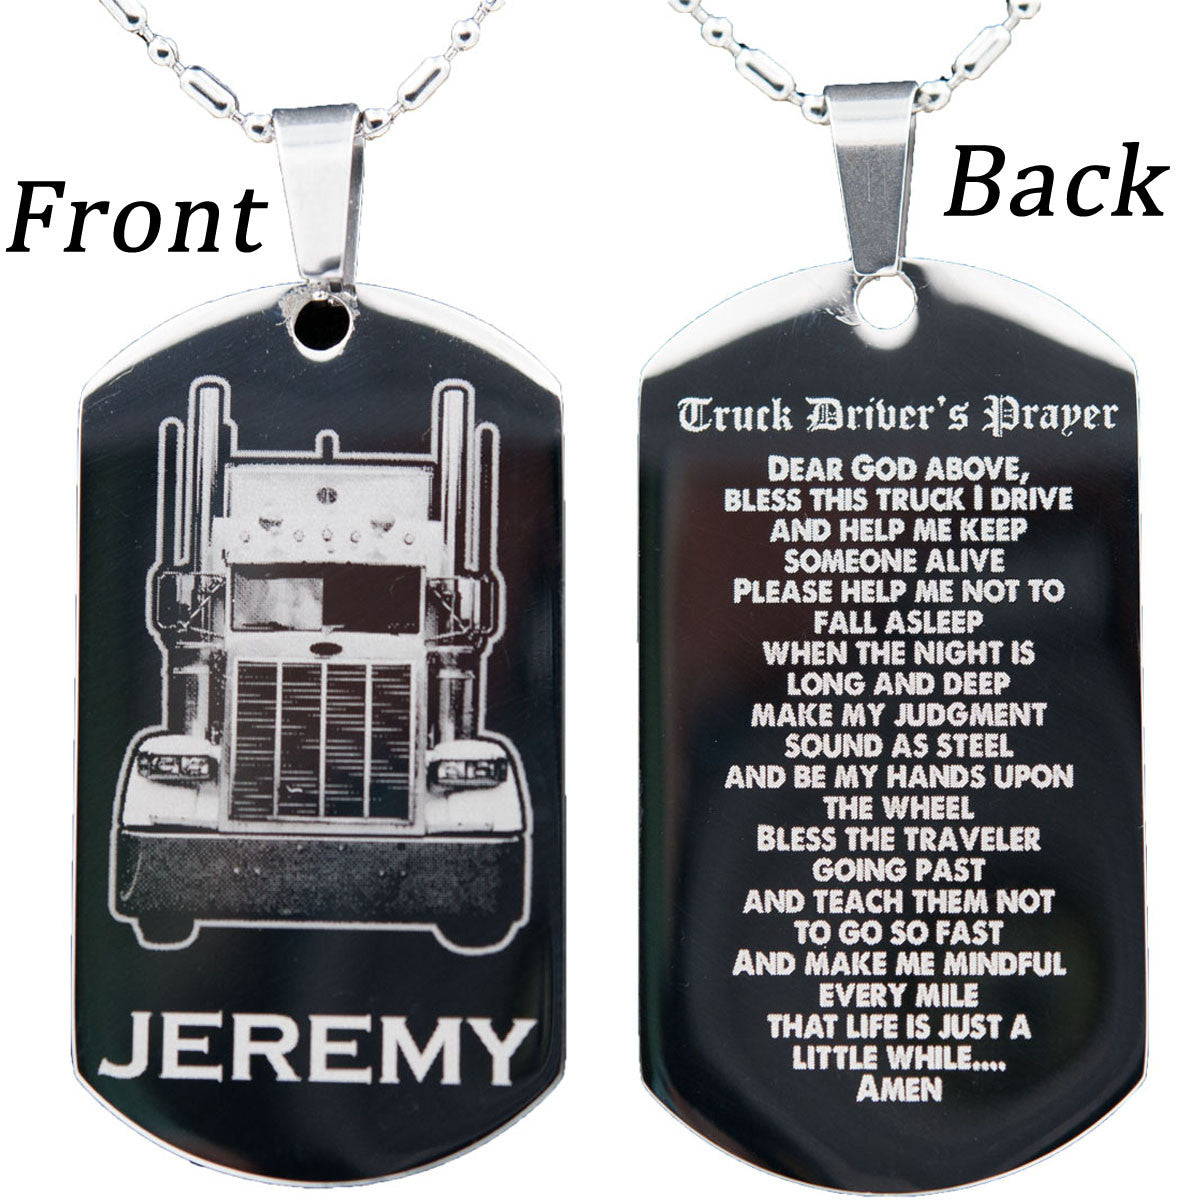 b1ae6b816e ... Stainless Steel Trucker's Dog Tag Necklace or Key Chain with FREE  Engraving ...